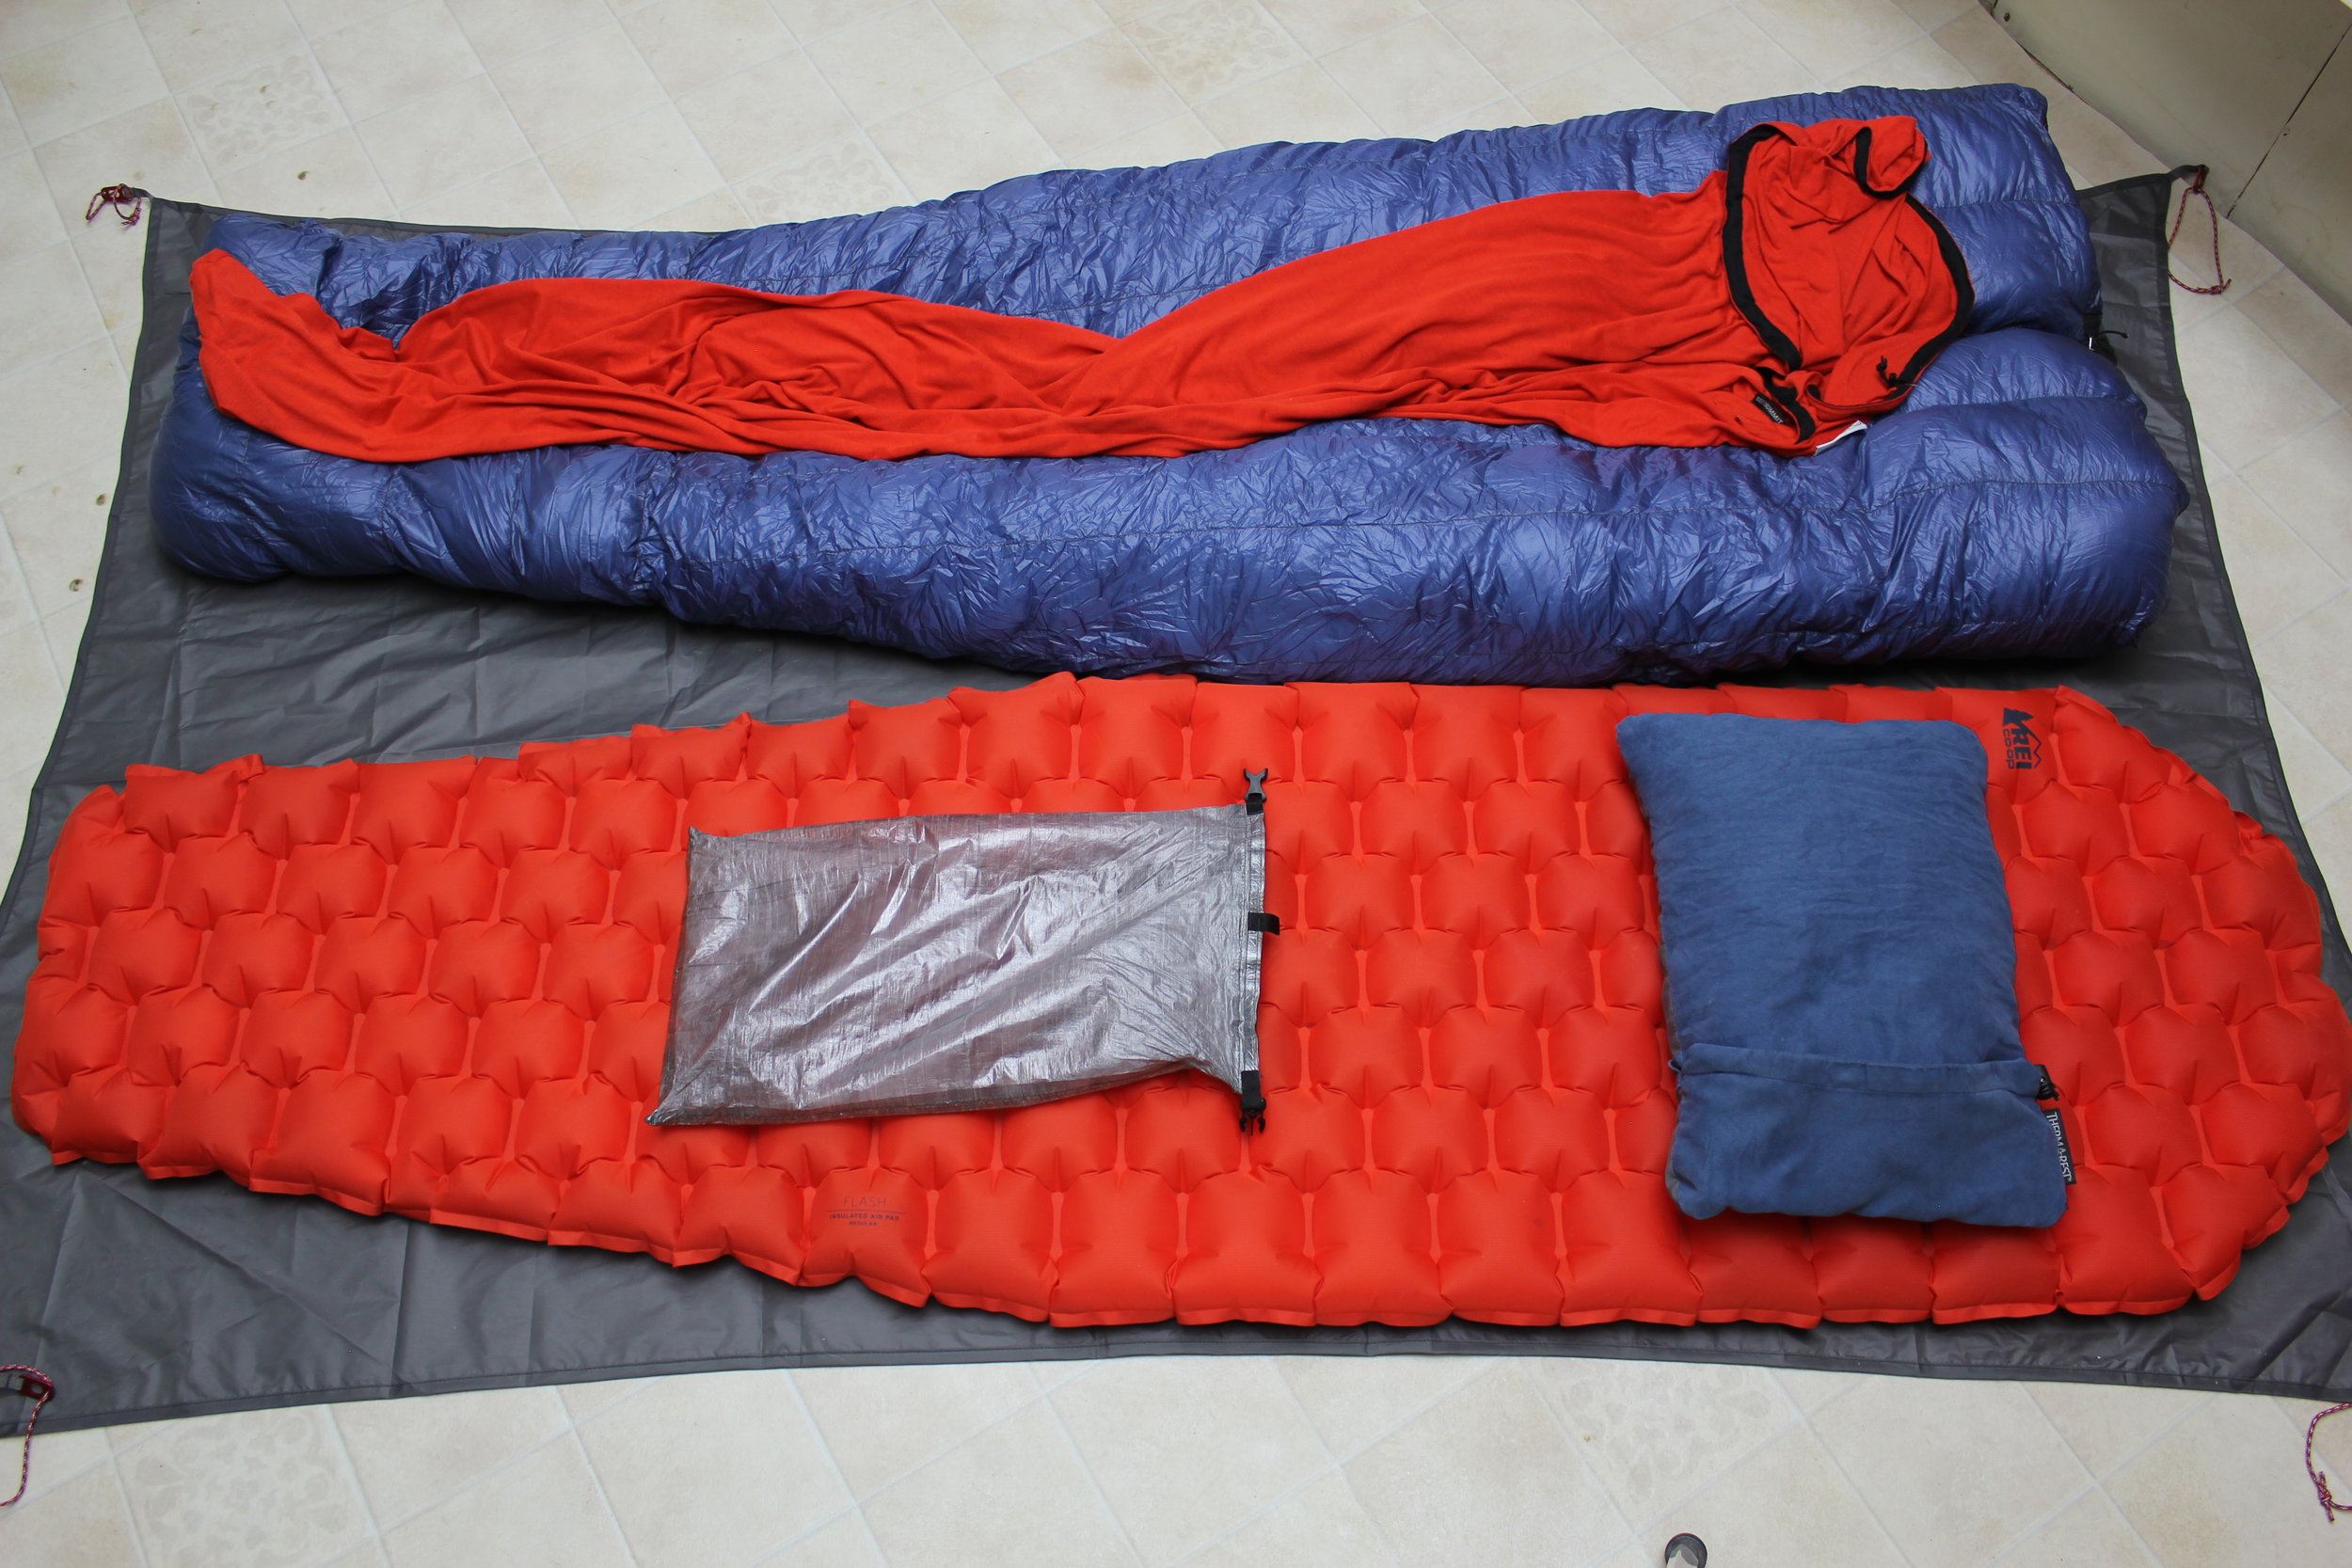 Z-Packs Classic Sleeping Bag = 20 oz  Sea-to=Summit Thermalite Reactor - Sleeping Bag Liner - 14 oz  REI Flash Sleeping Pad - 1 lb 2 oz  Therm-a-Rest Compressible Pillow - 7 oz